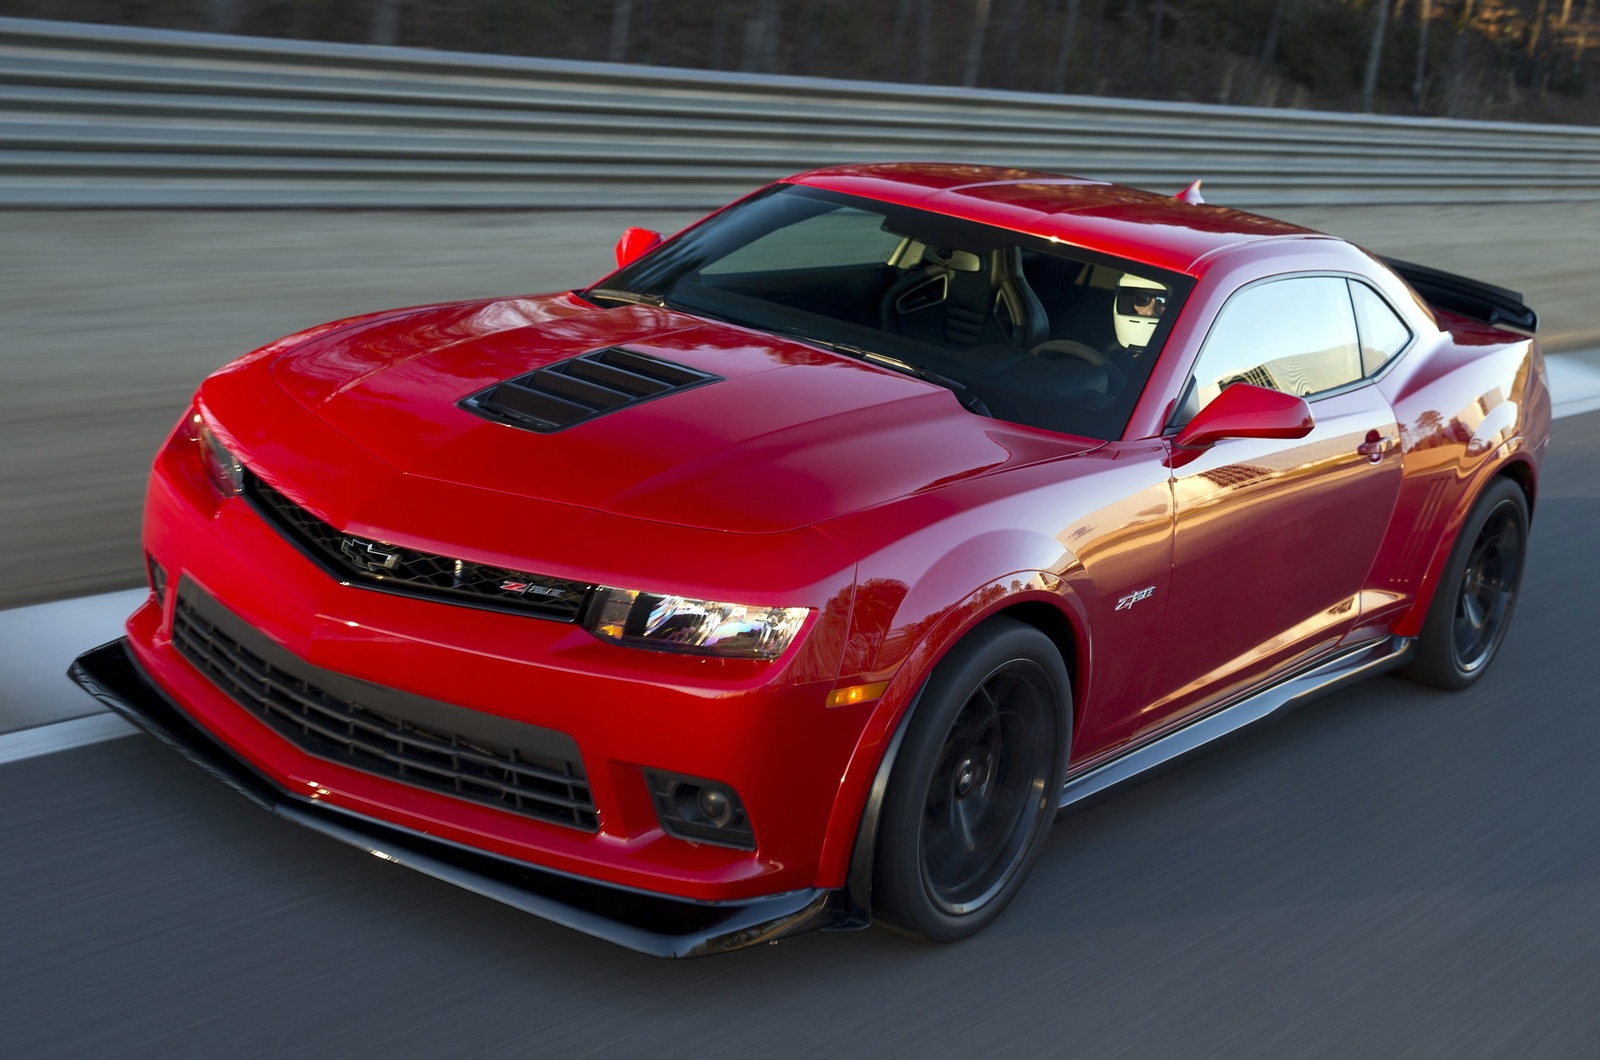 New 2015 Chevrolet Camaro For Sale - CarGurus